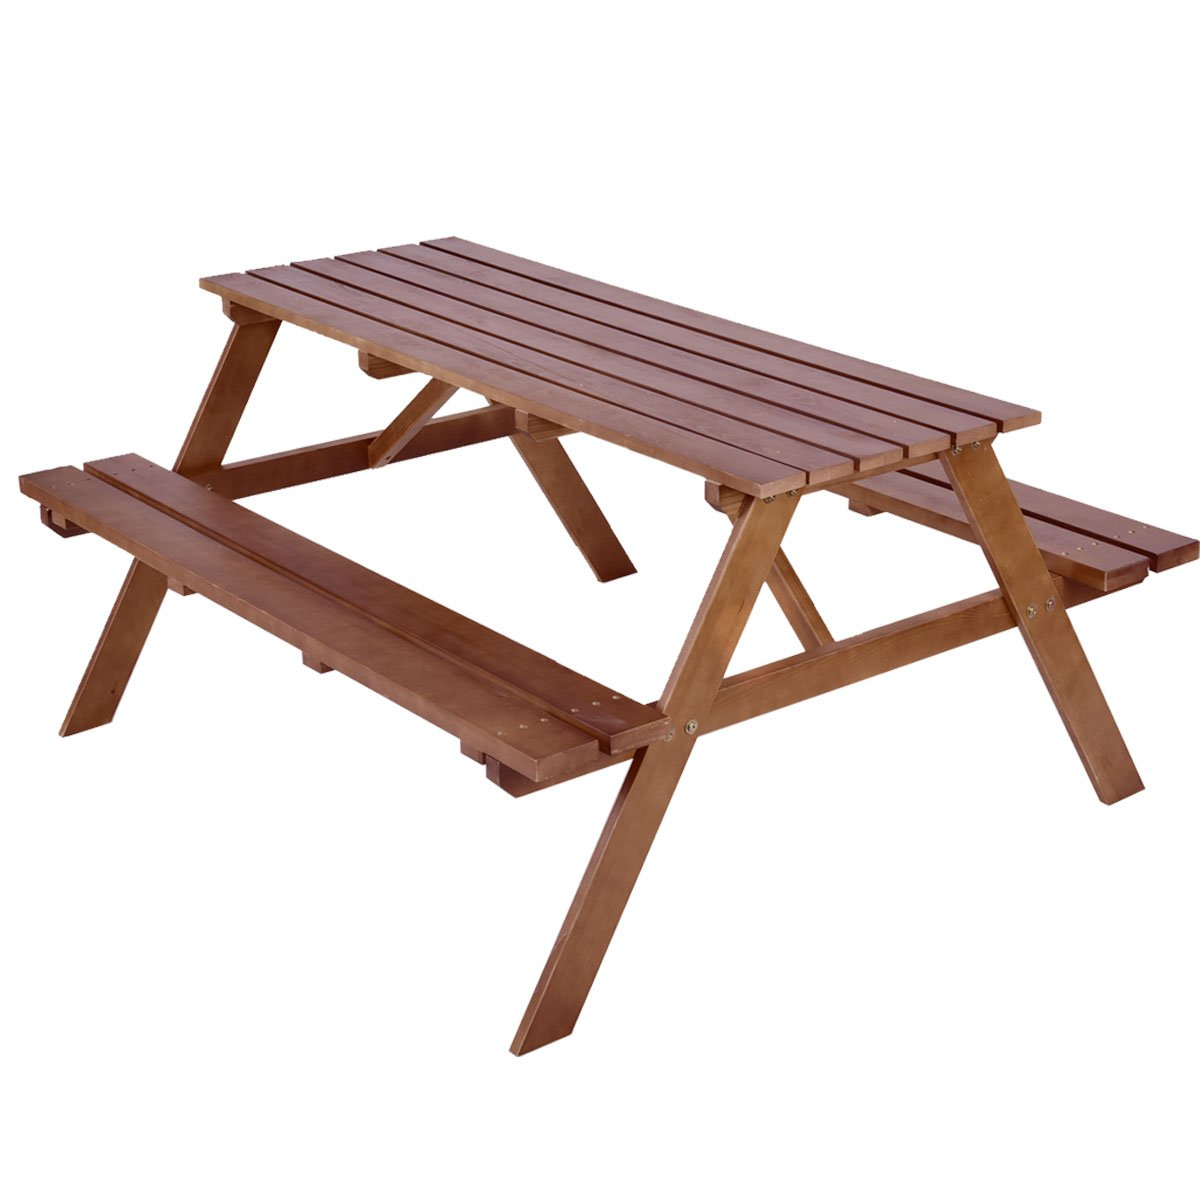 Giantex Solid Pine Wood Picnic Table w/ Attached Bench Seat Garden Backyard Outdoor